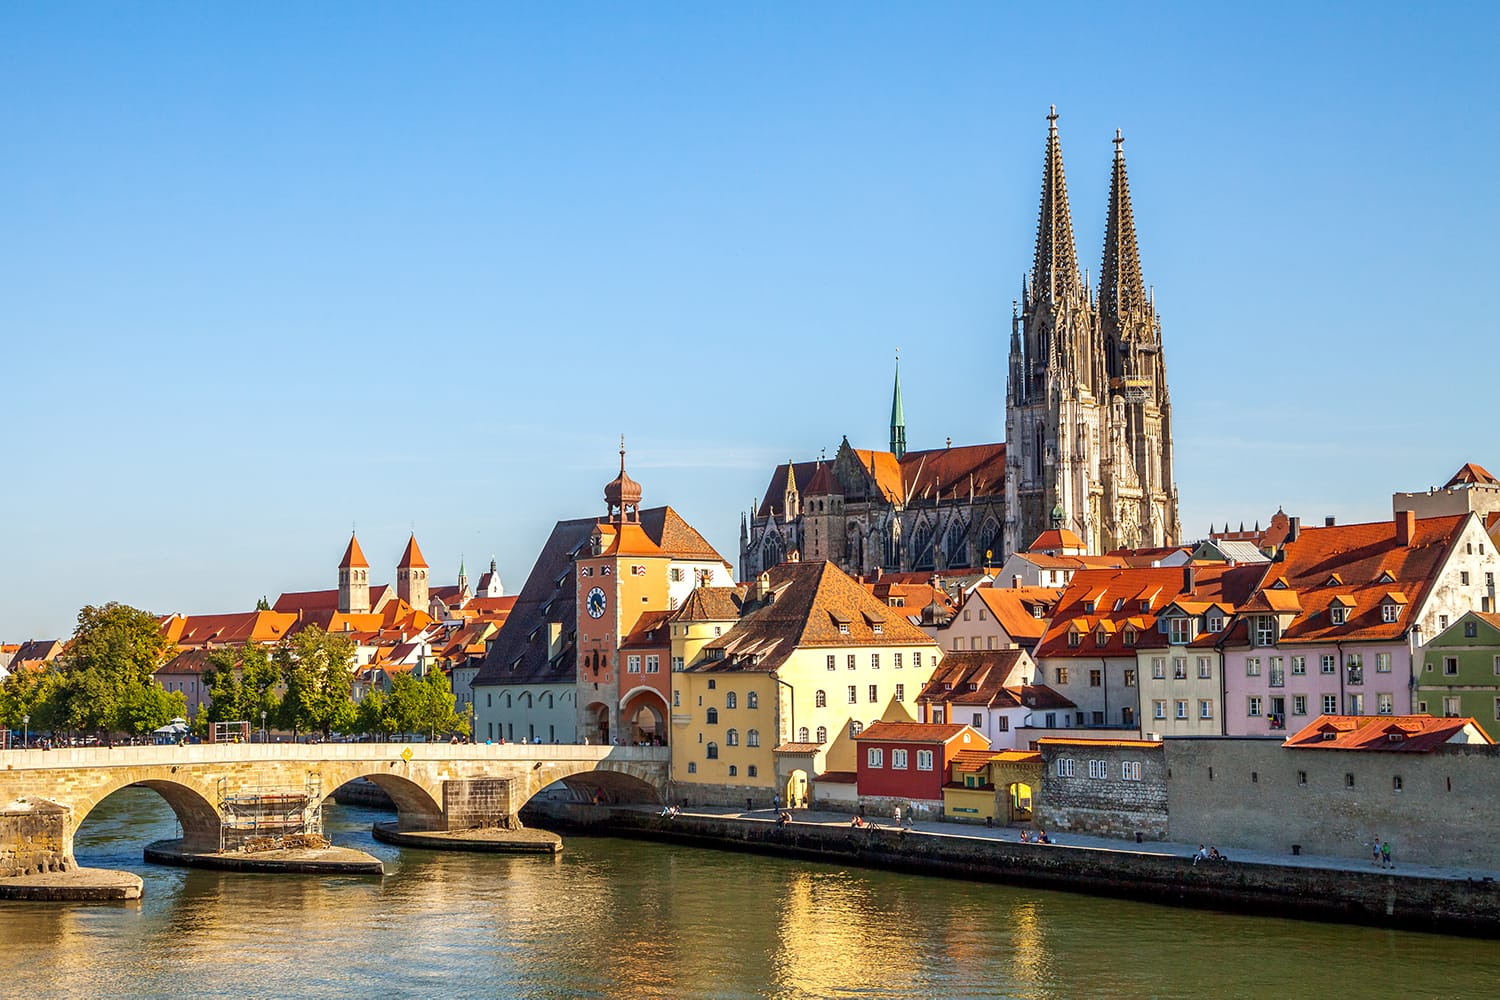 Riverfront in Regensburg, Germany